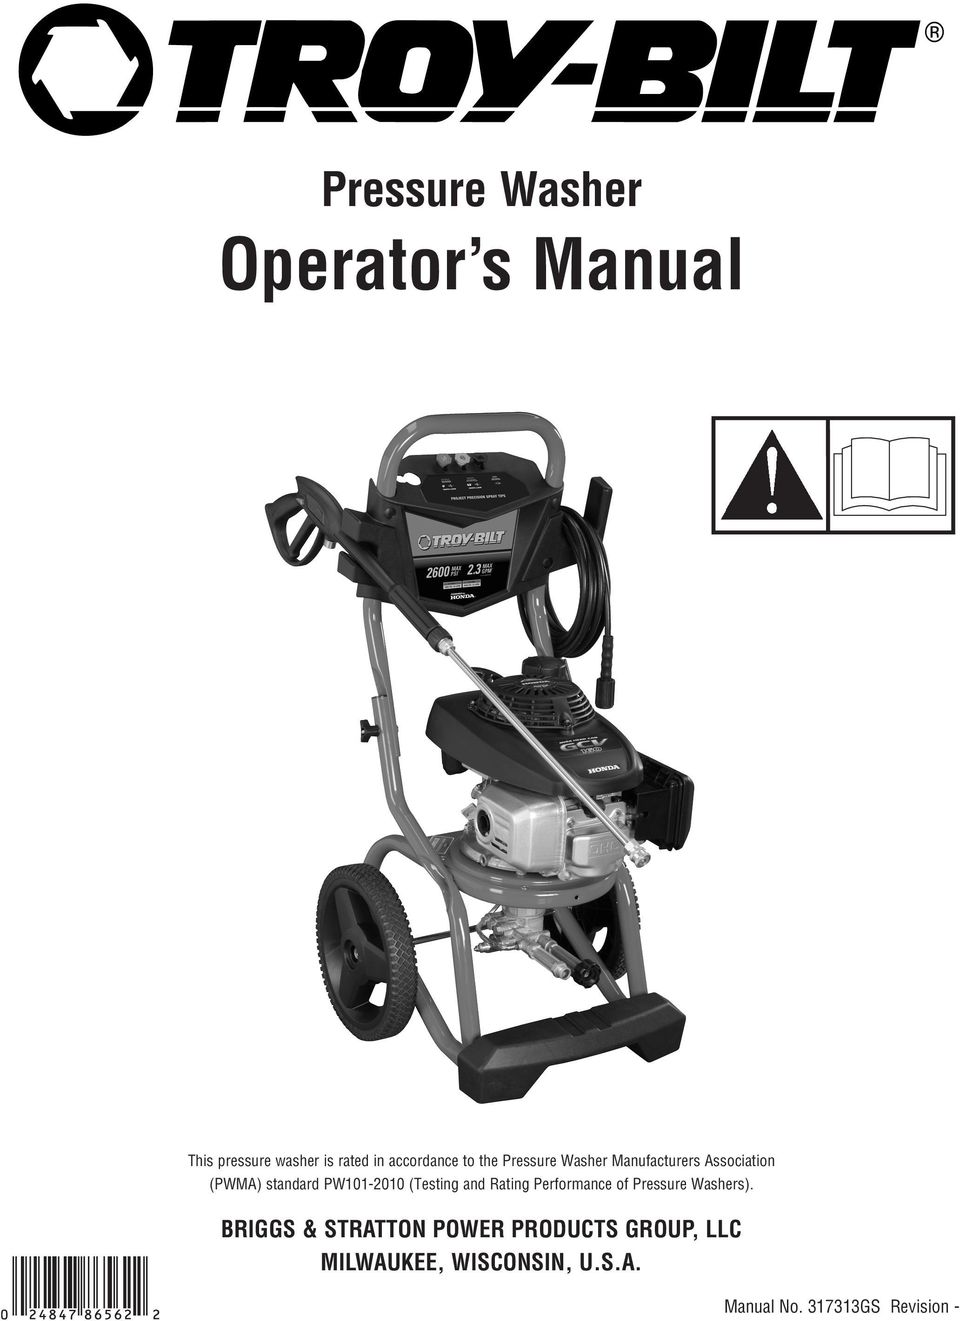 (Testing and Rating Performance of Pressure Washers).